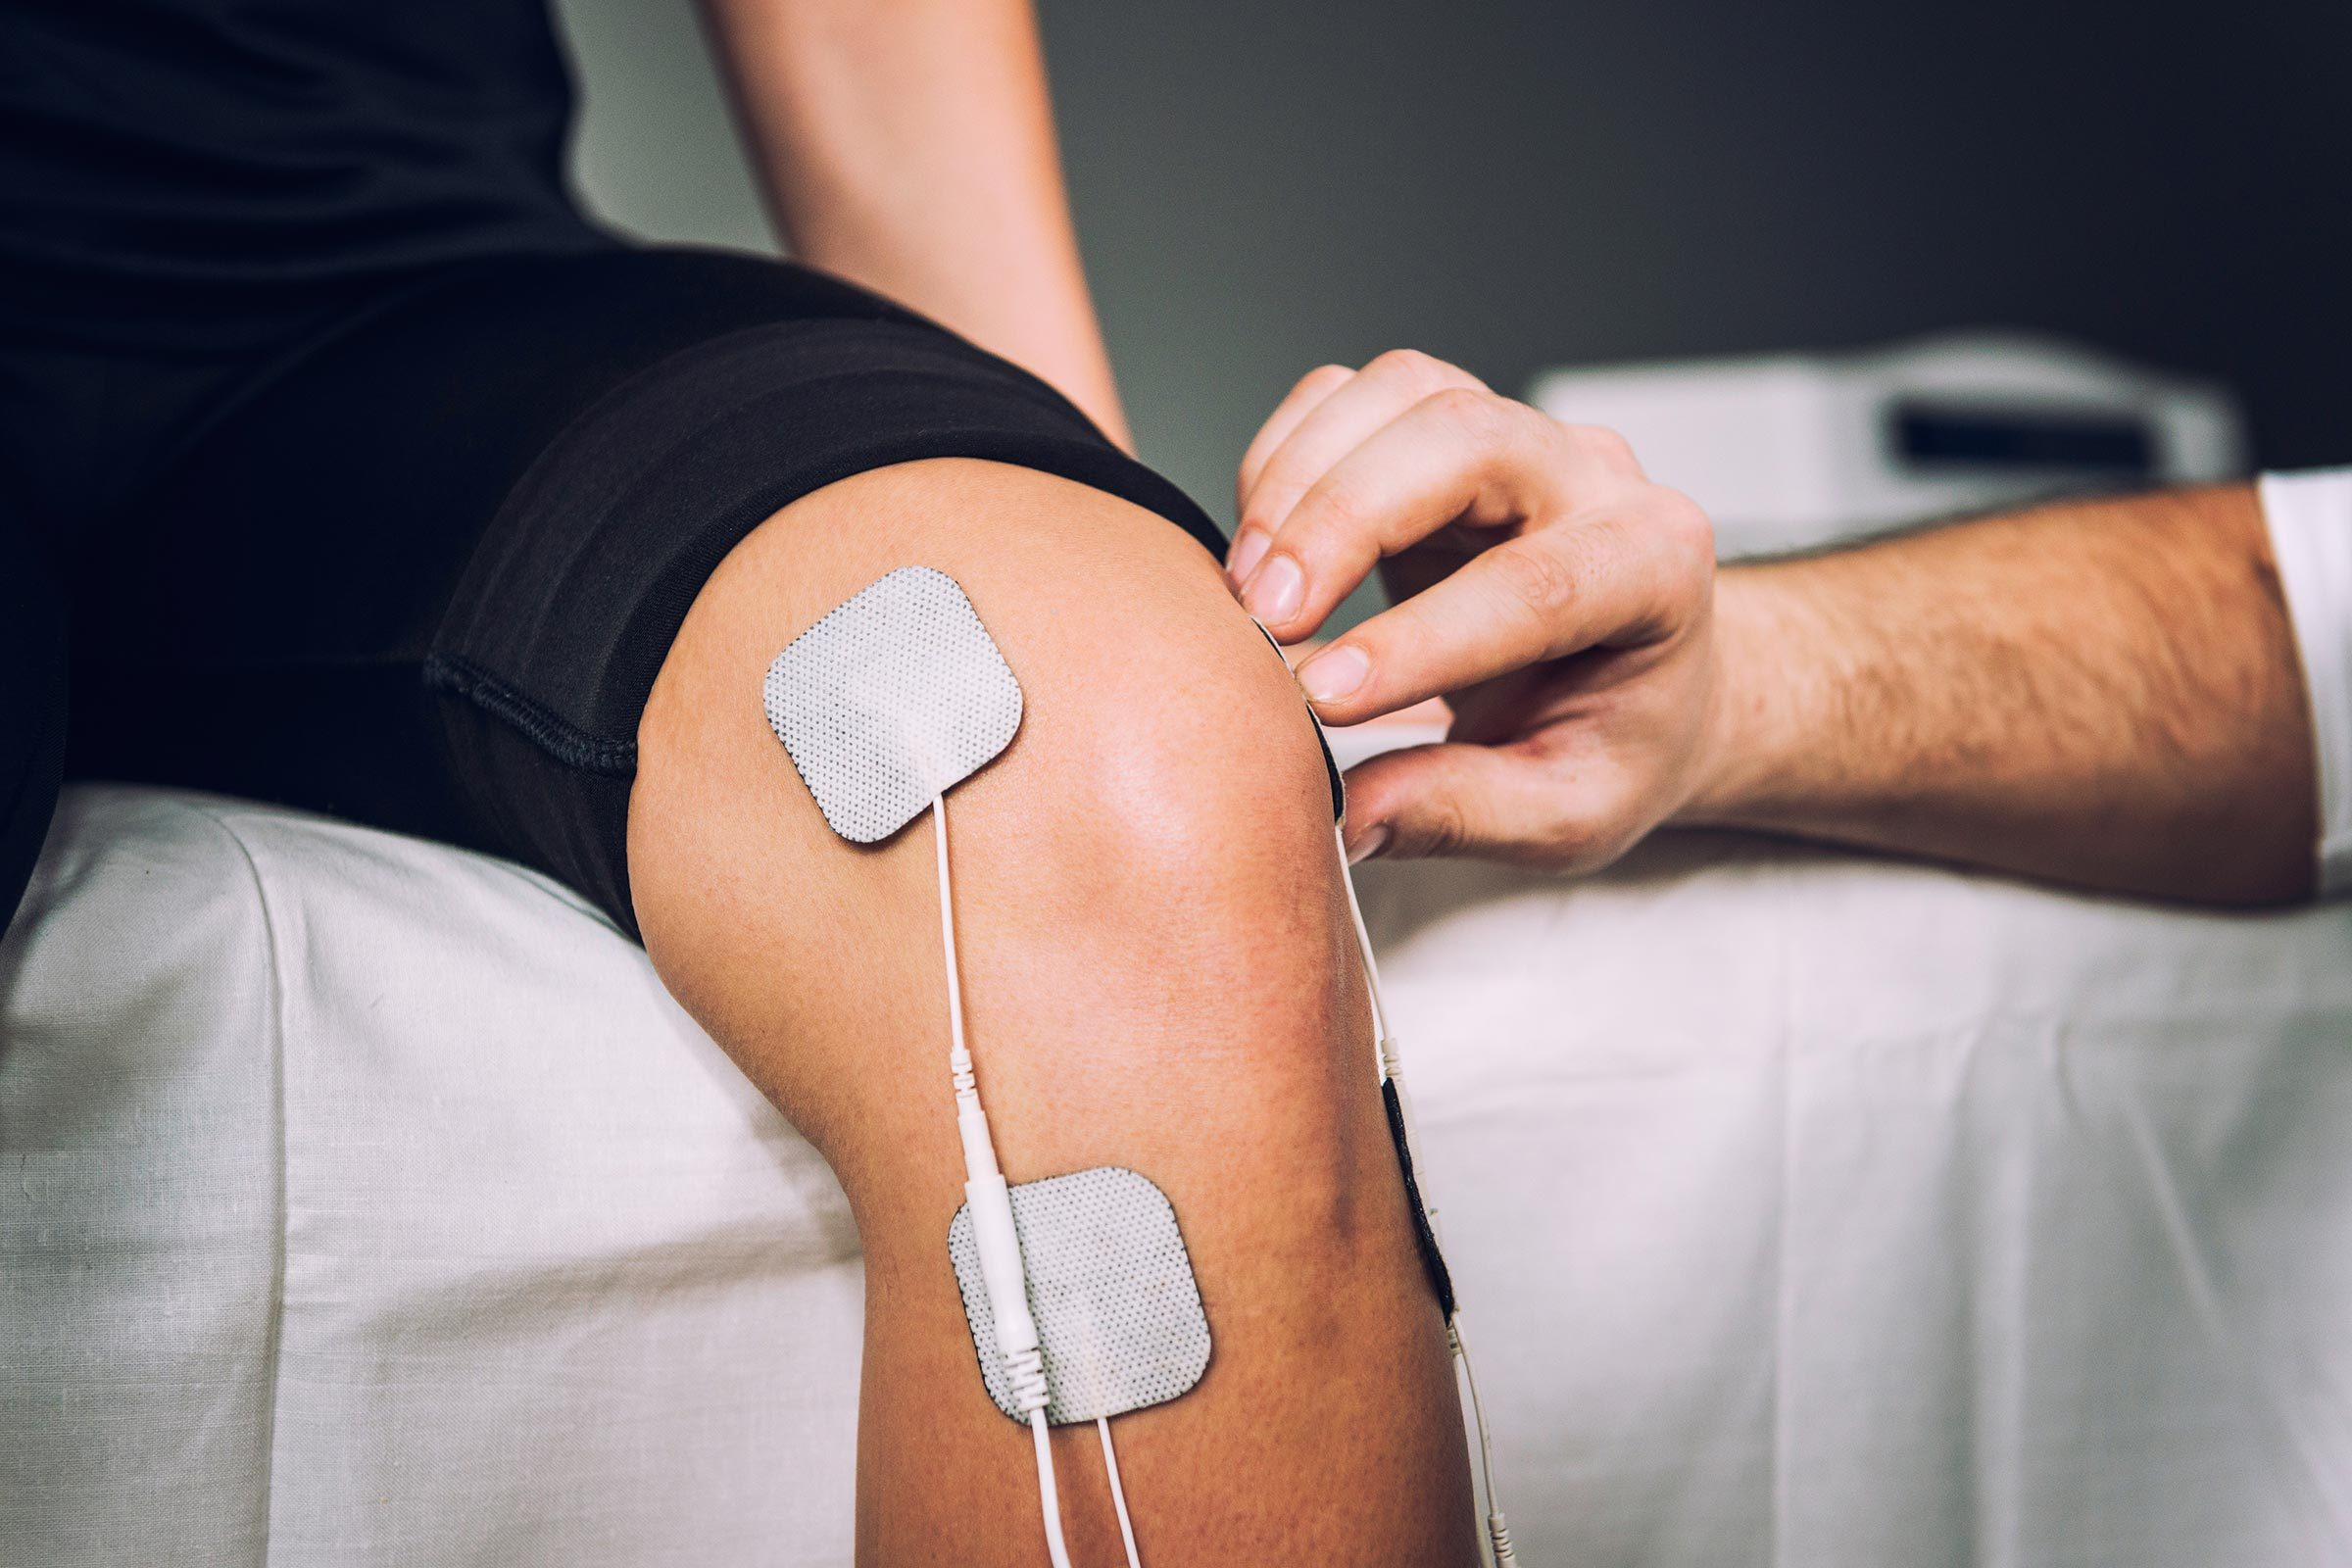 nerve stimulation